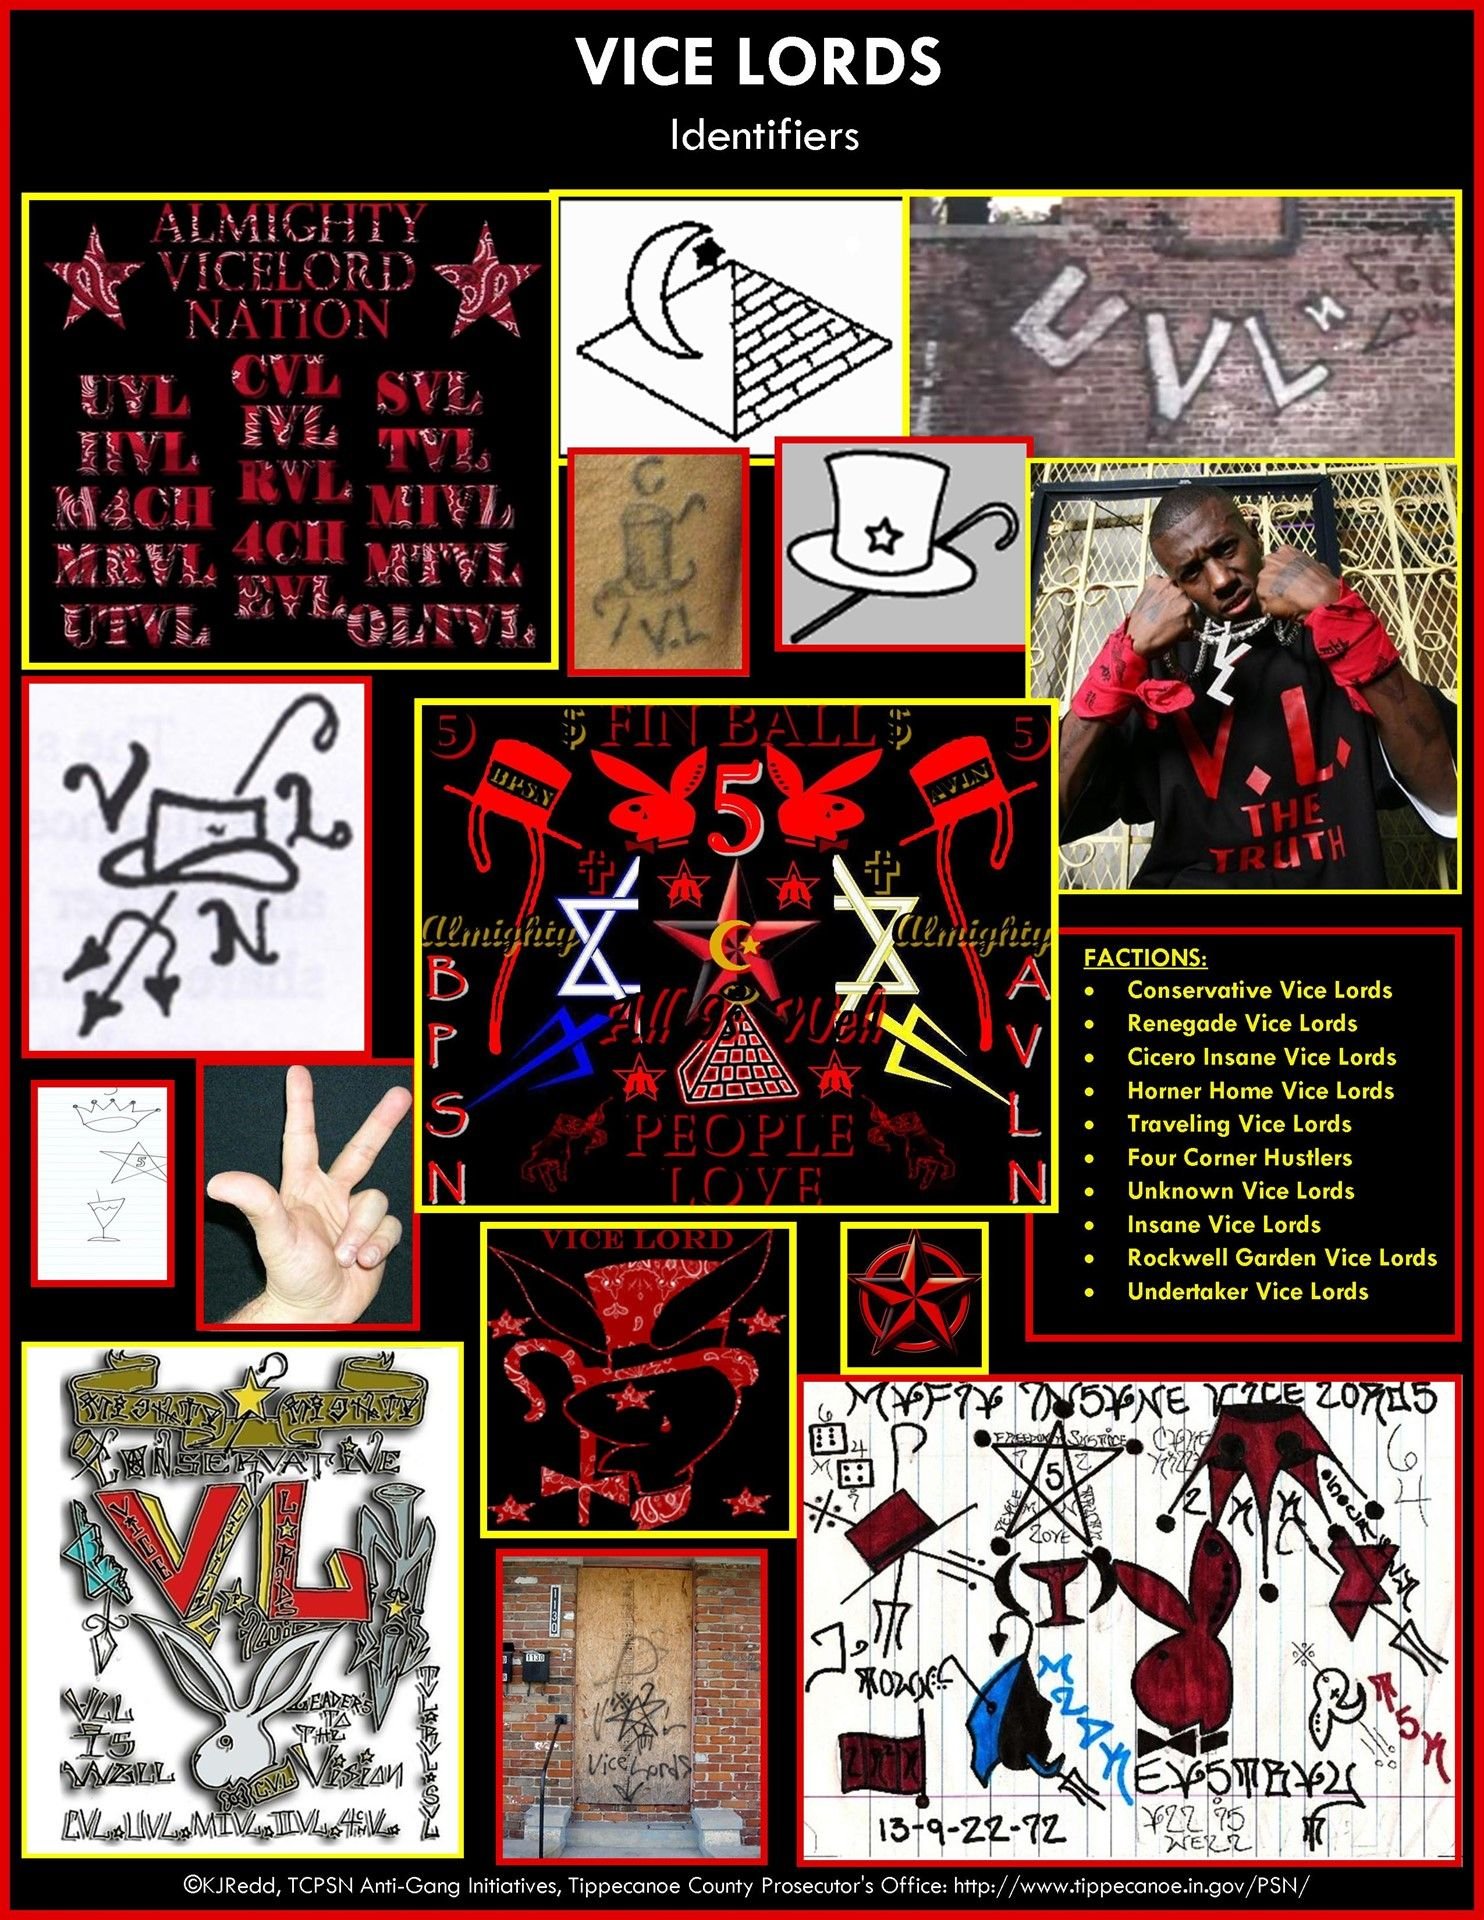 A Collage Of Tattoos And Identifiers Of The Vice Lords Gang